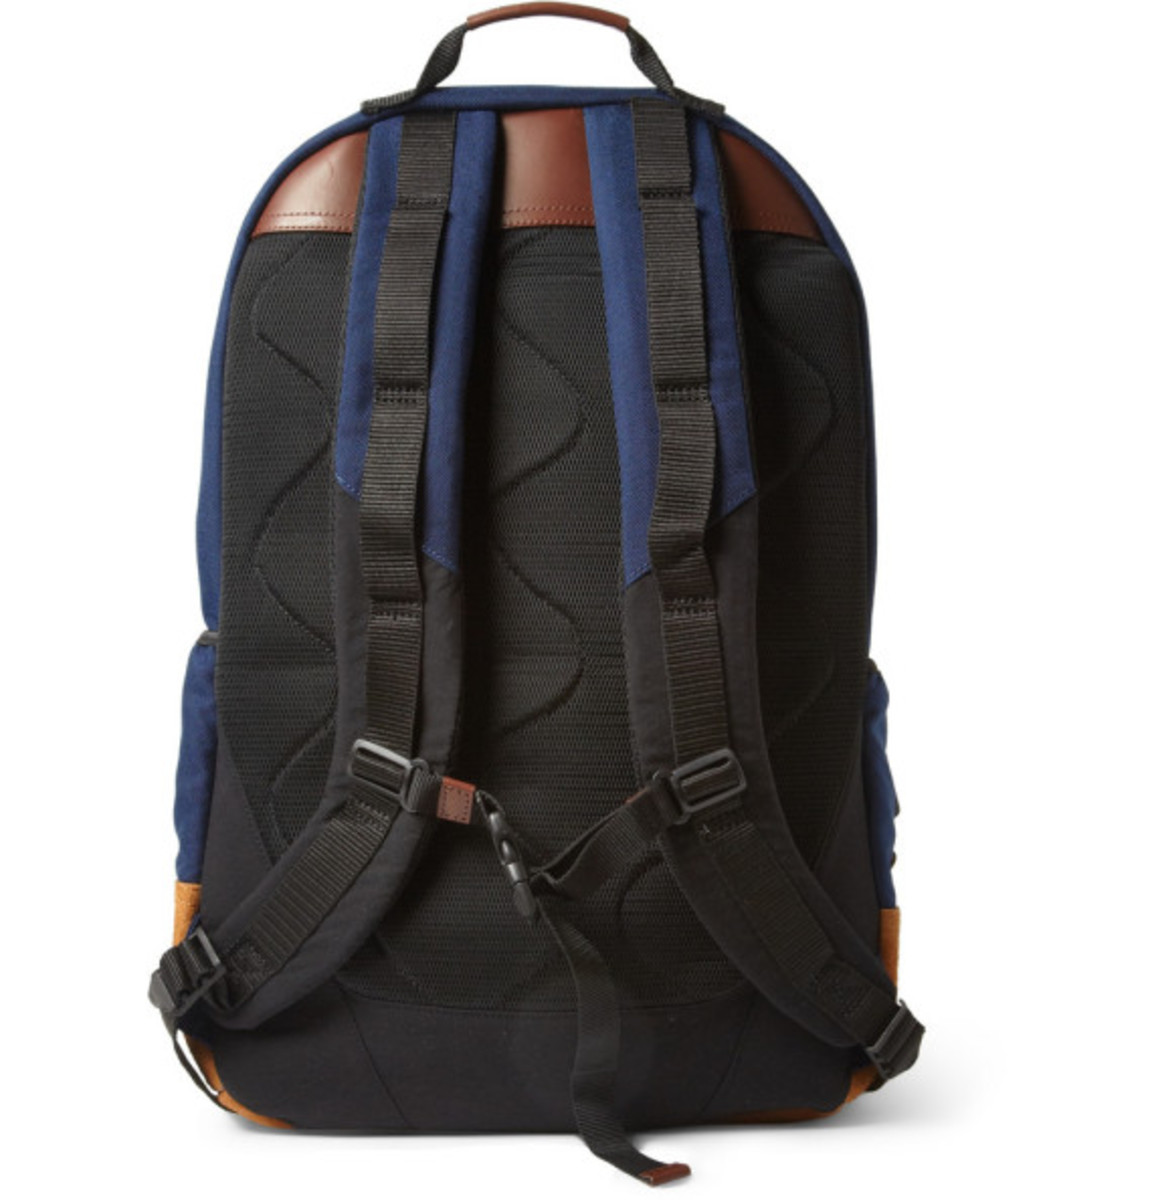 rag-and-bone-burnished-leather-and-nylon-backpack-07